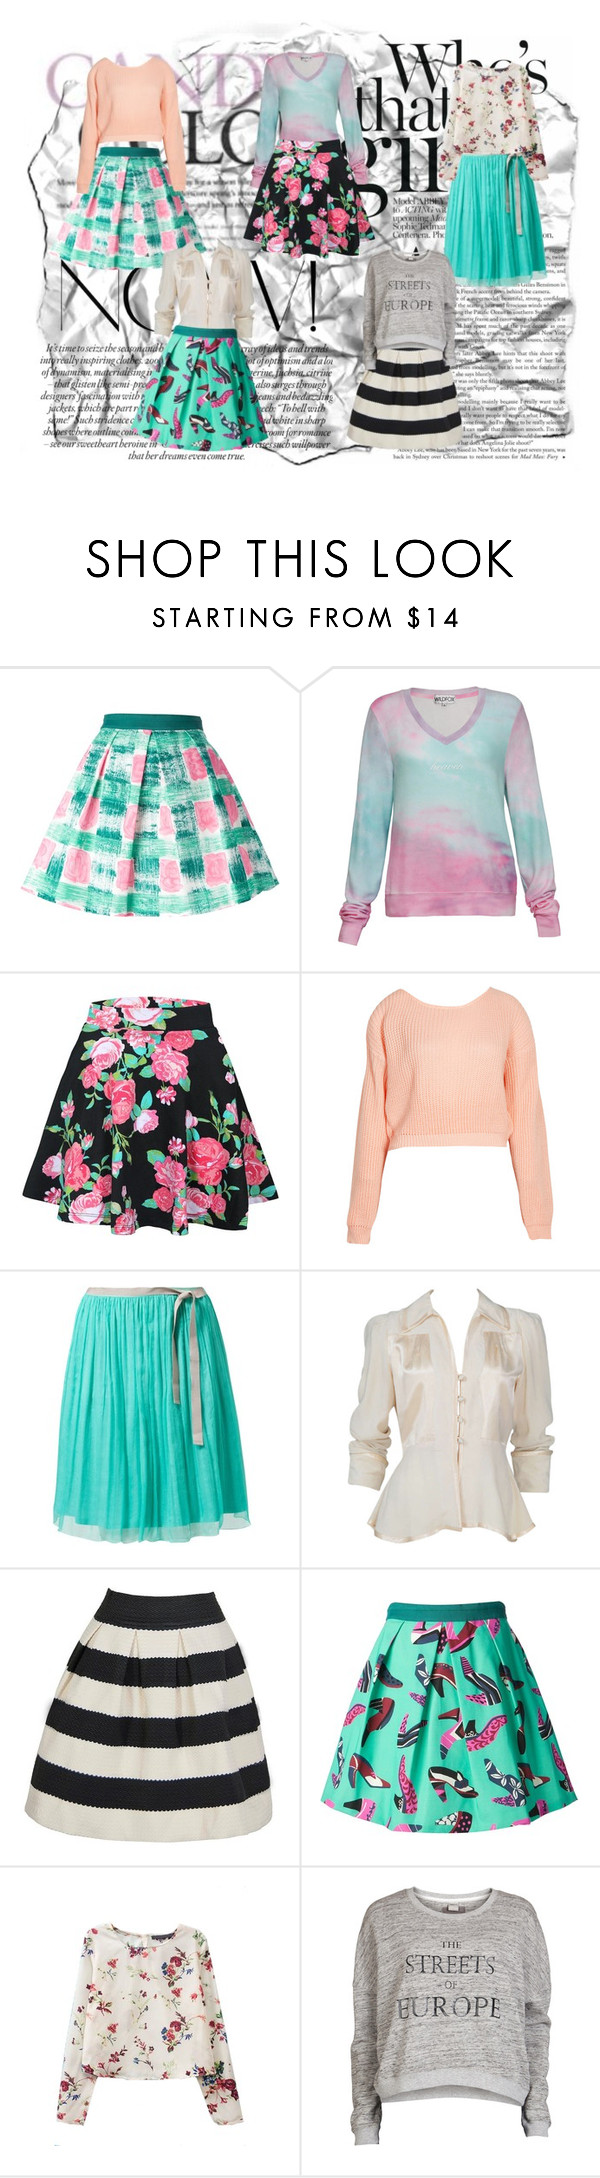 """""""cute + sporty = best outfit EVER!"""" by irinichi ❤ liked on Polyvore featuring Eggs, Wildfox, Boohoo, LIU•JO, Ossie Clark and Object Collectors Item"""